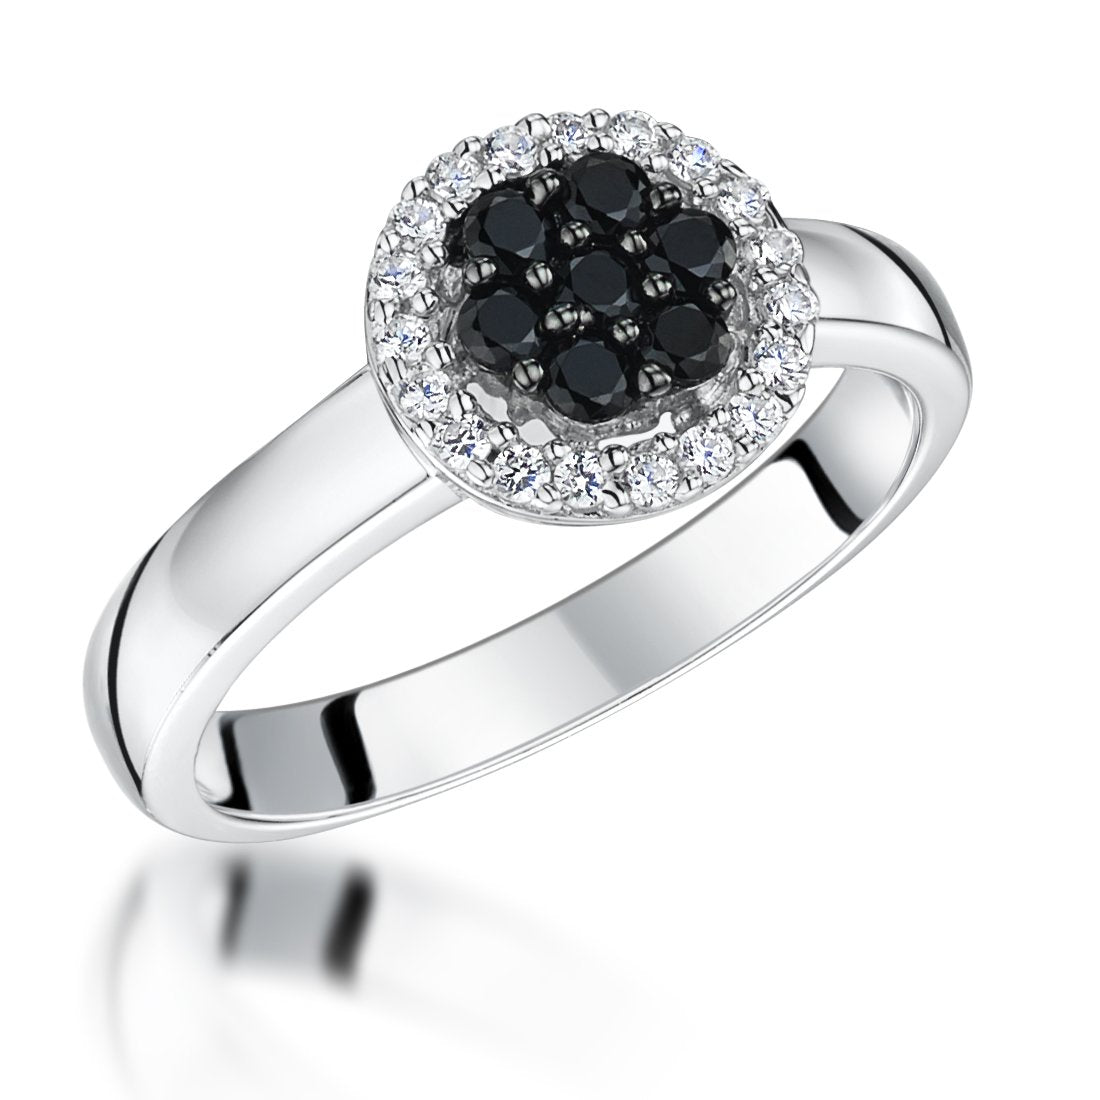 Sterling Silver Halo Ring Pave Set with Black and White Cubic Zirconia StonesRings - JOOLS By Jenny Brown